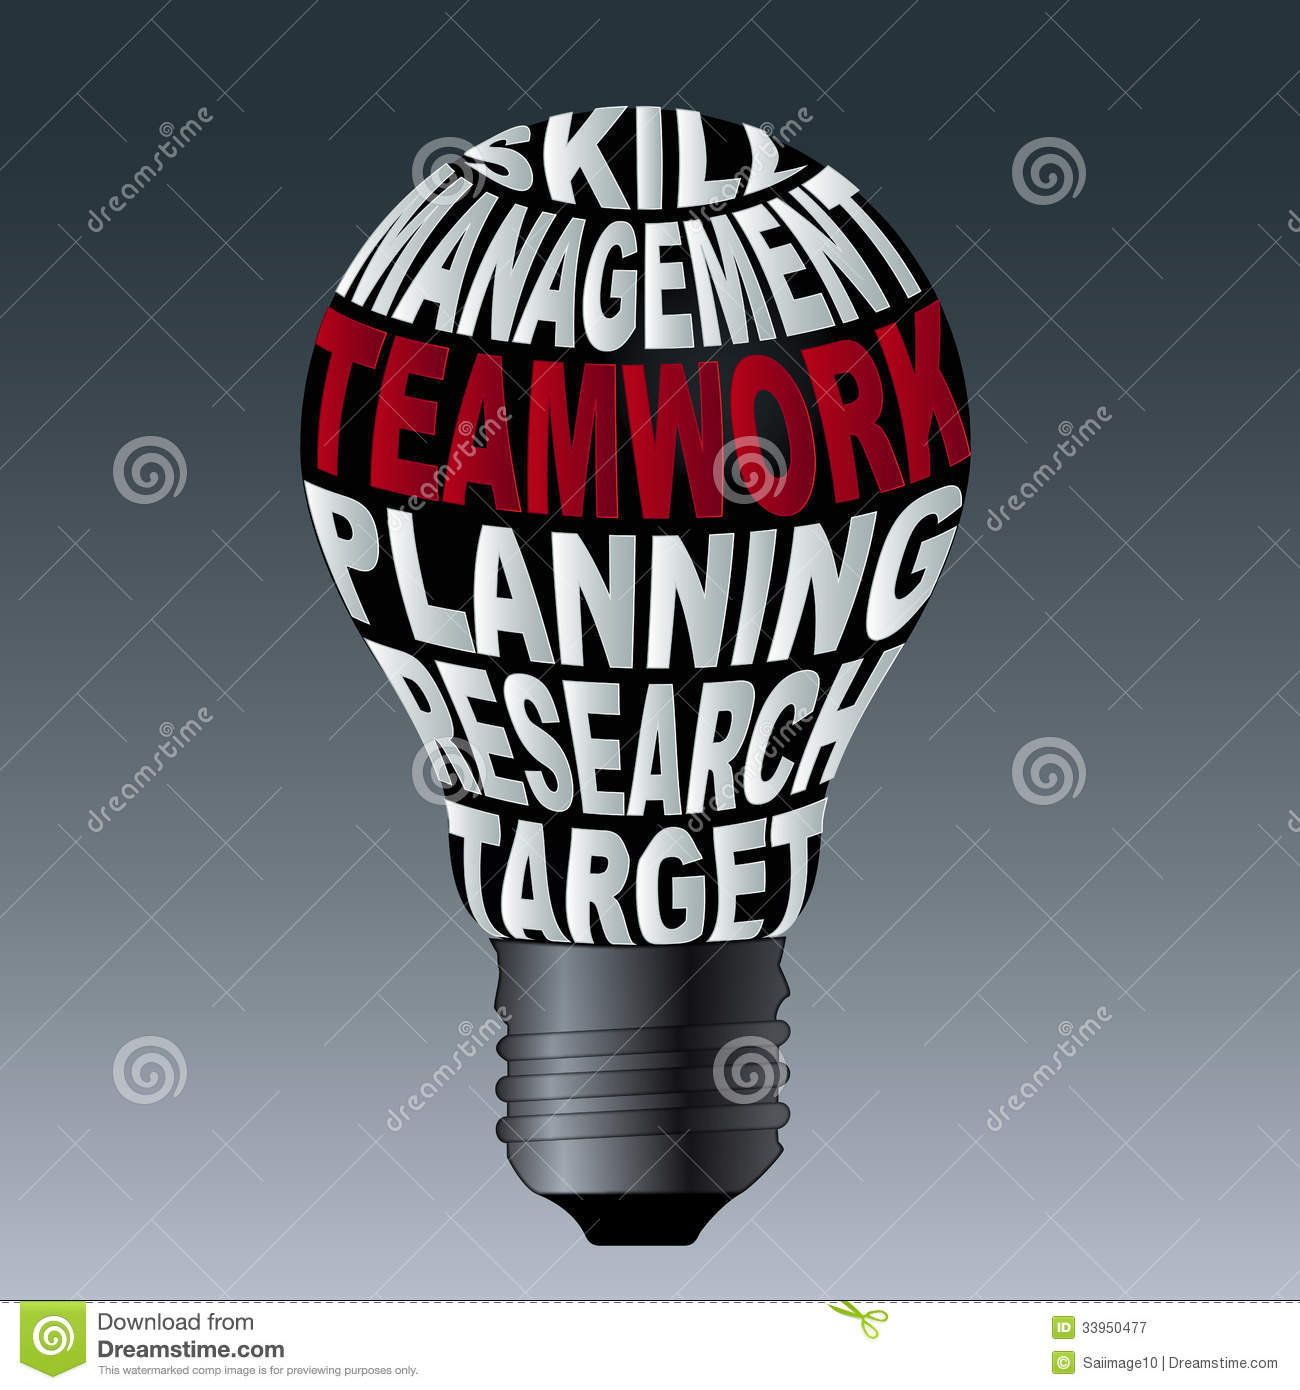 Bulb Of Skill Management Teamwork Planning Research Target Royalty ...